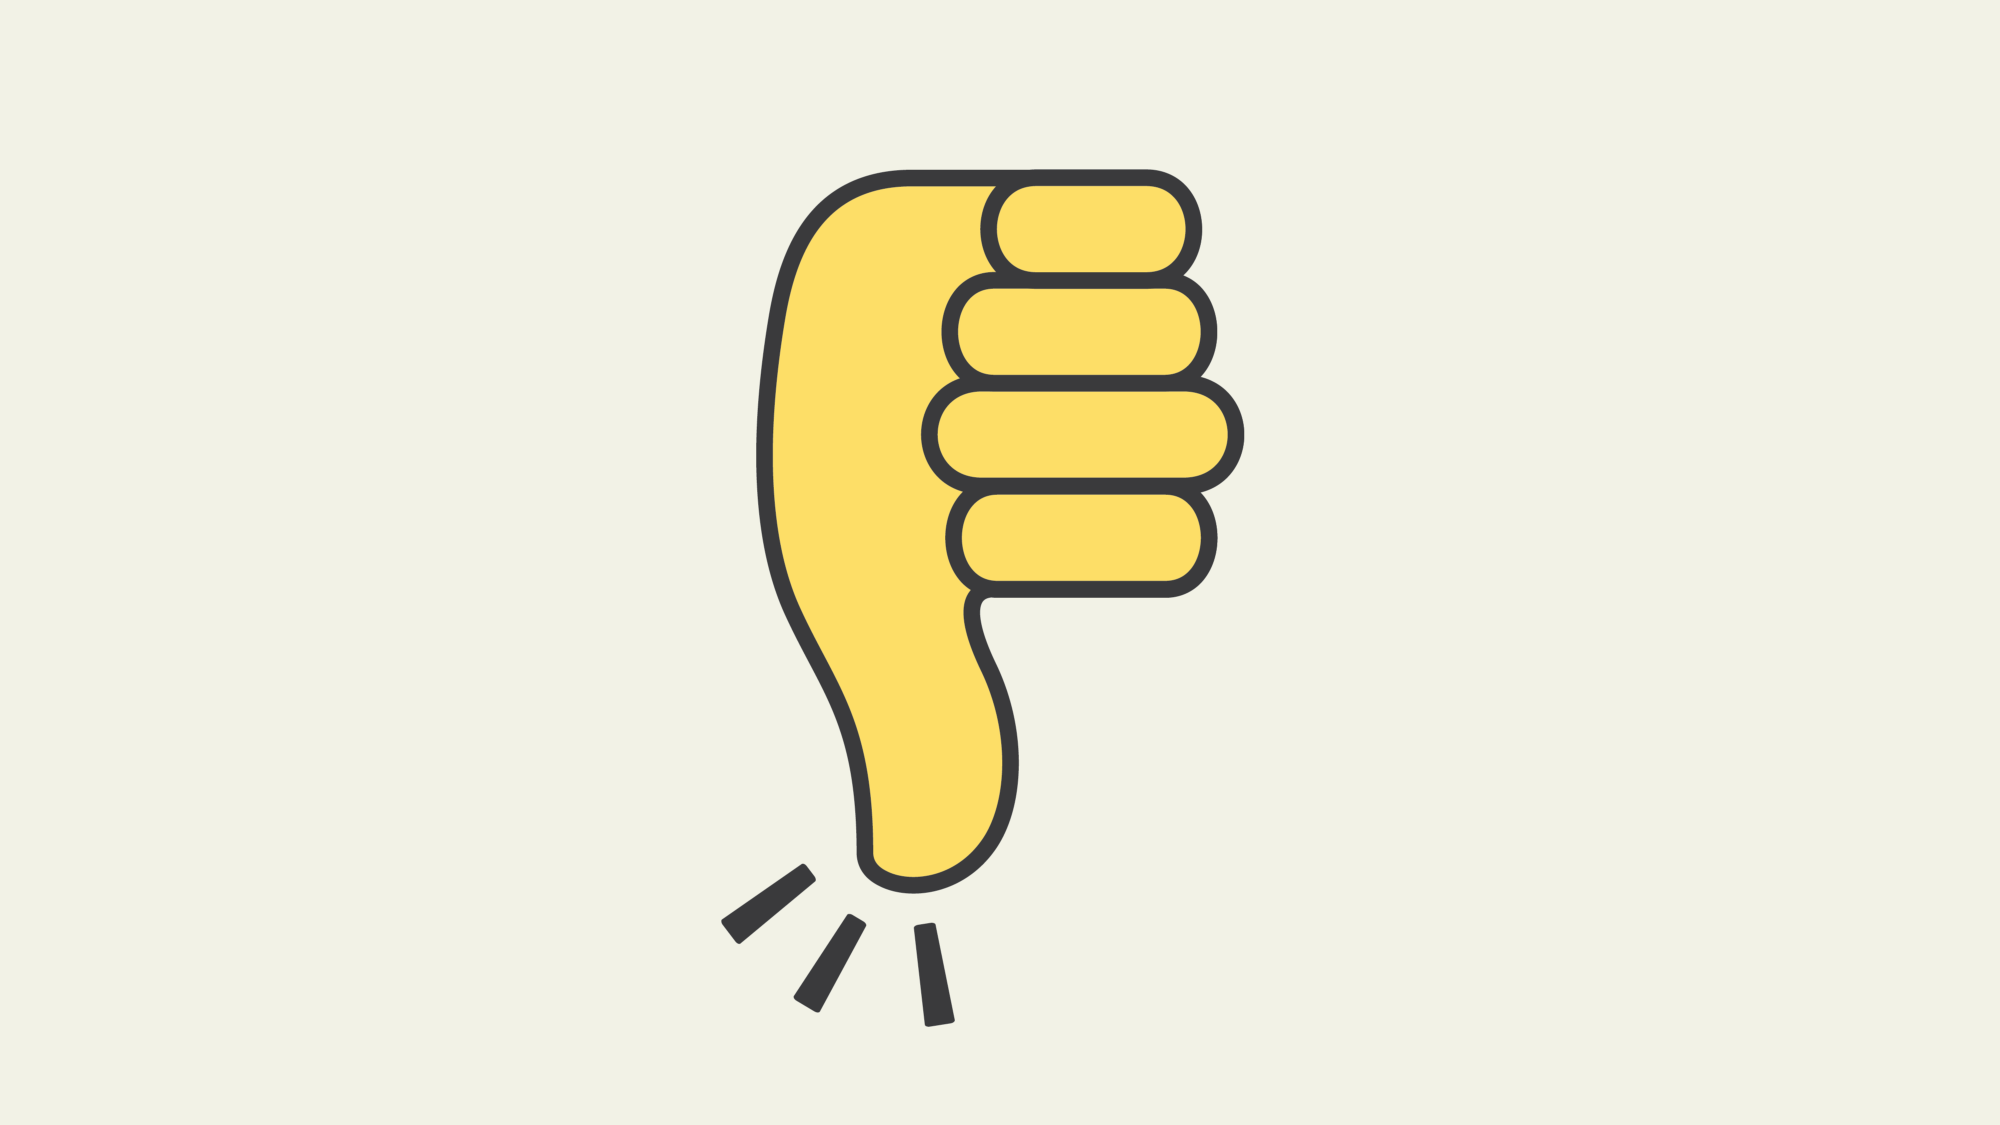 Graphic featuring a thumbs down emoji stylized to mimic the Clubhouse waving logo.